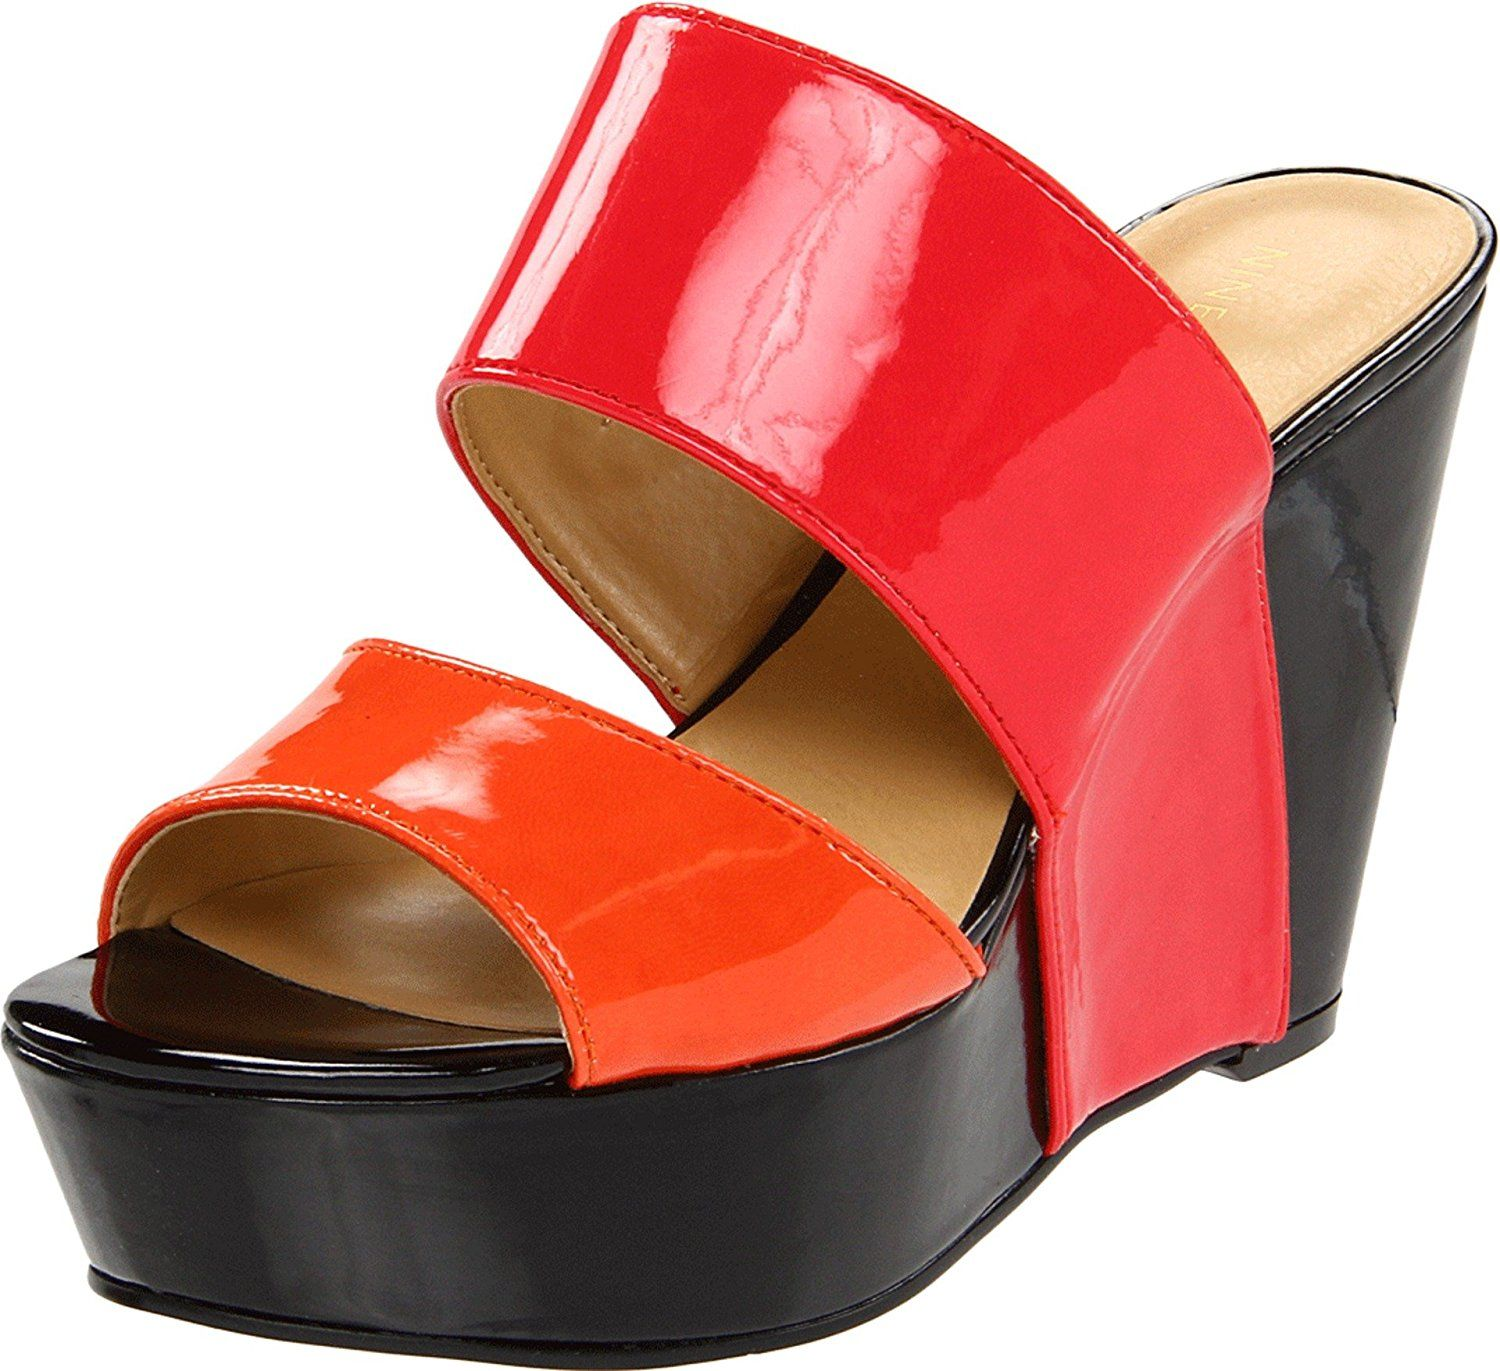 Nine West Women's Larysa Wedge Sandal => Want to know more, visit the site now : Platform sandals